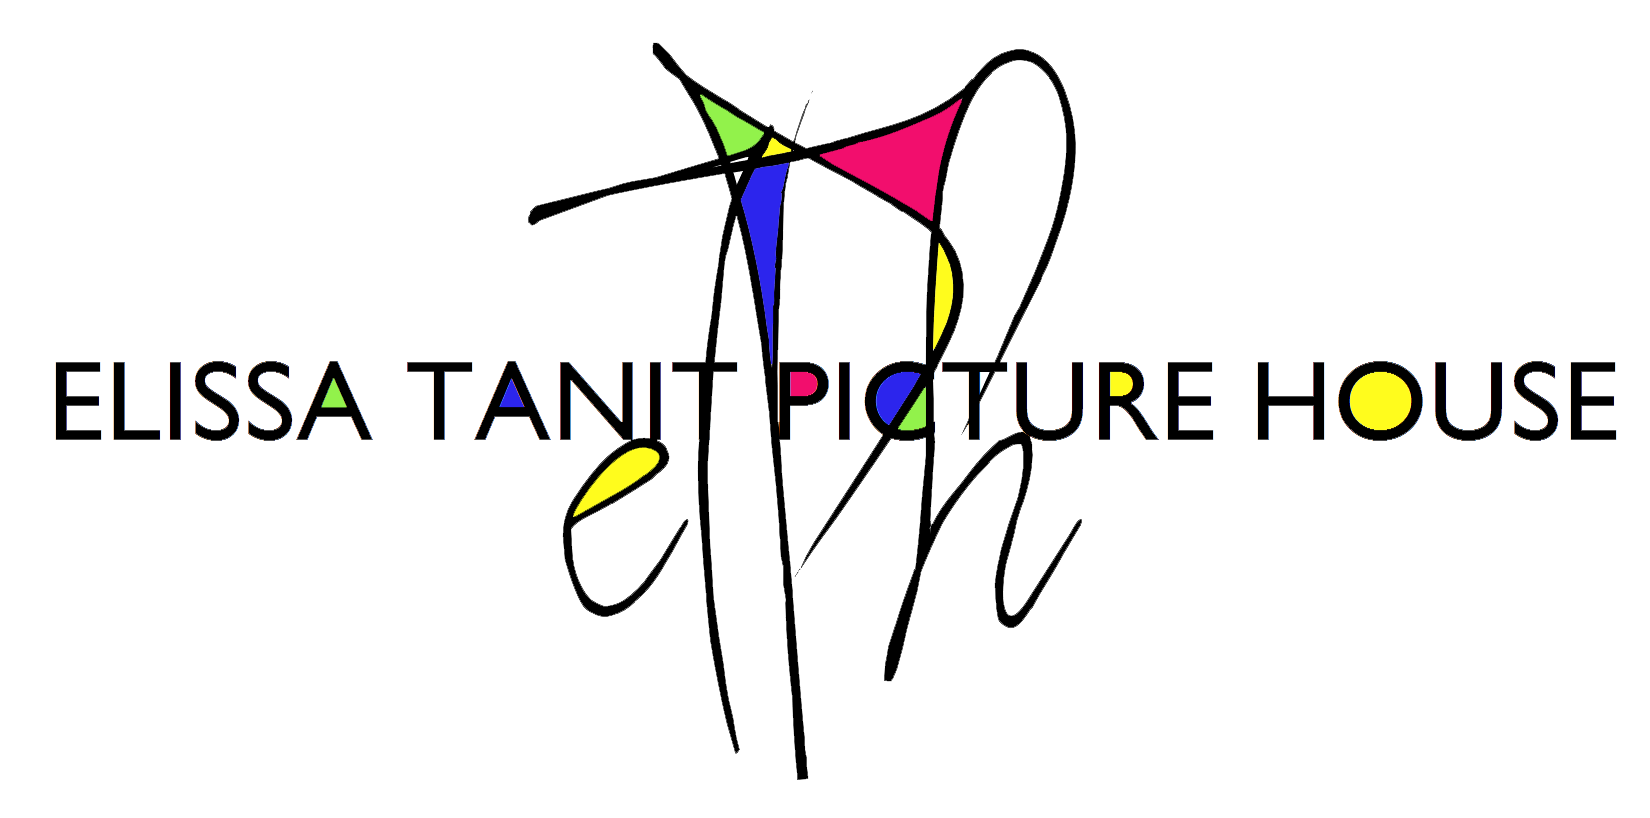 Elissa Tanit Picture House - make good art